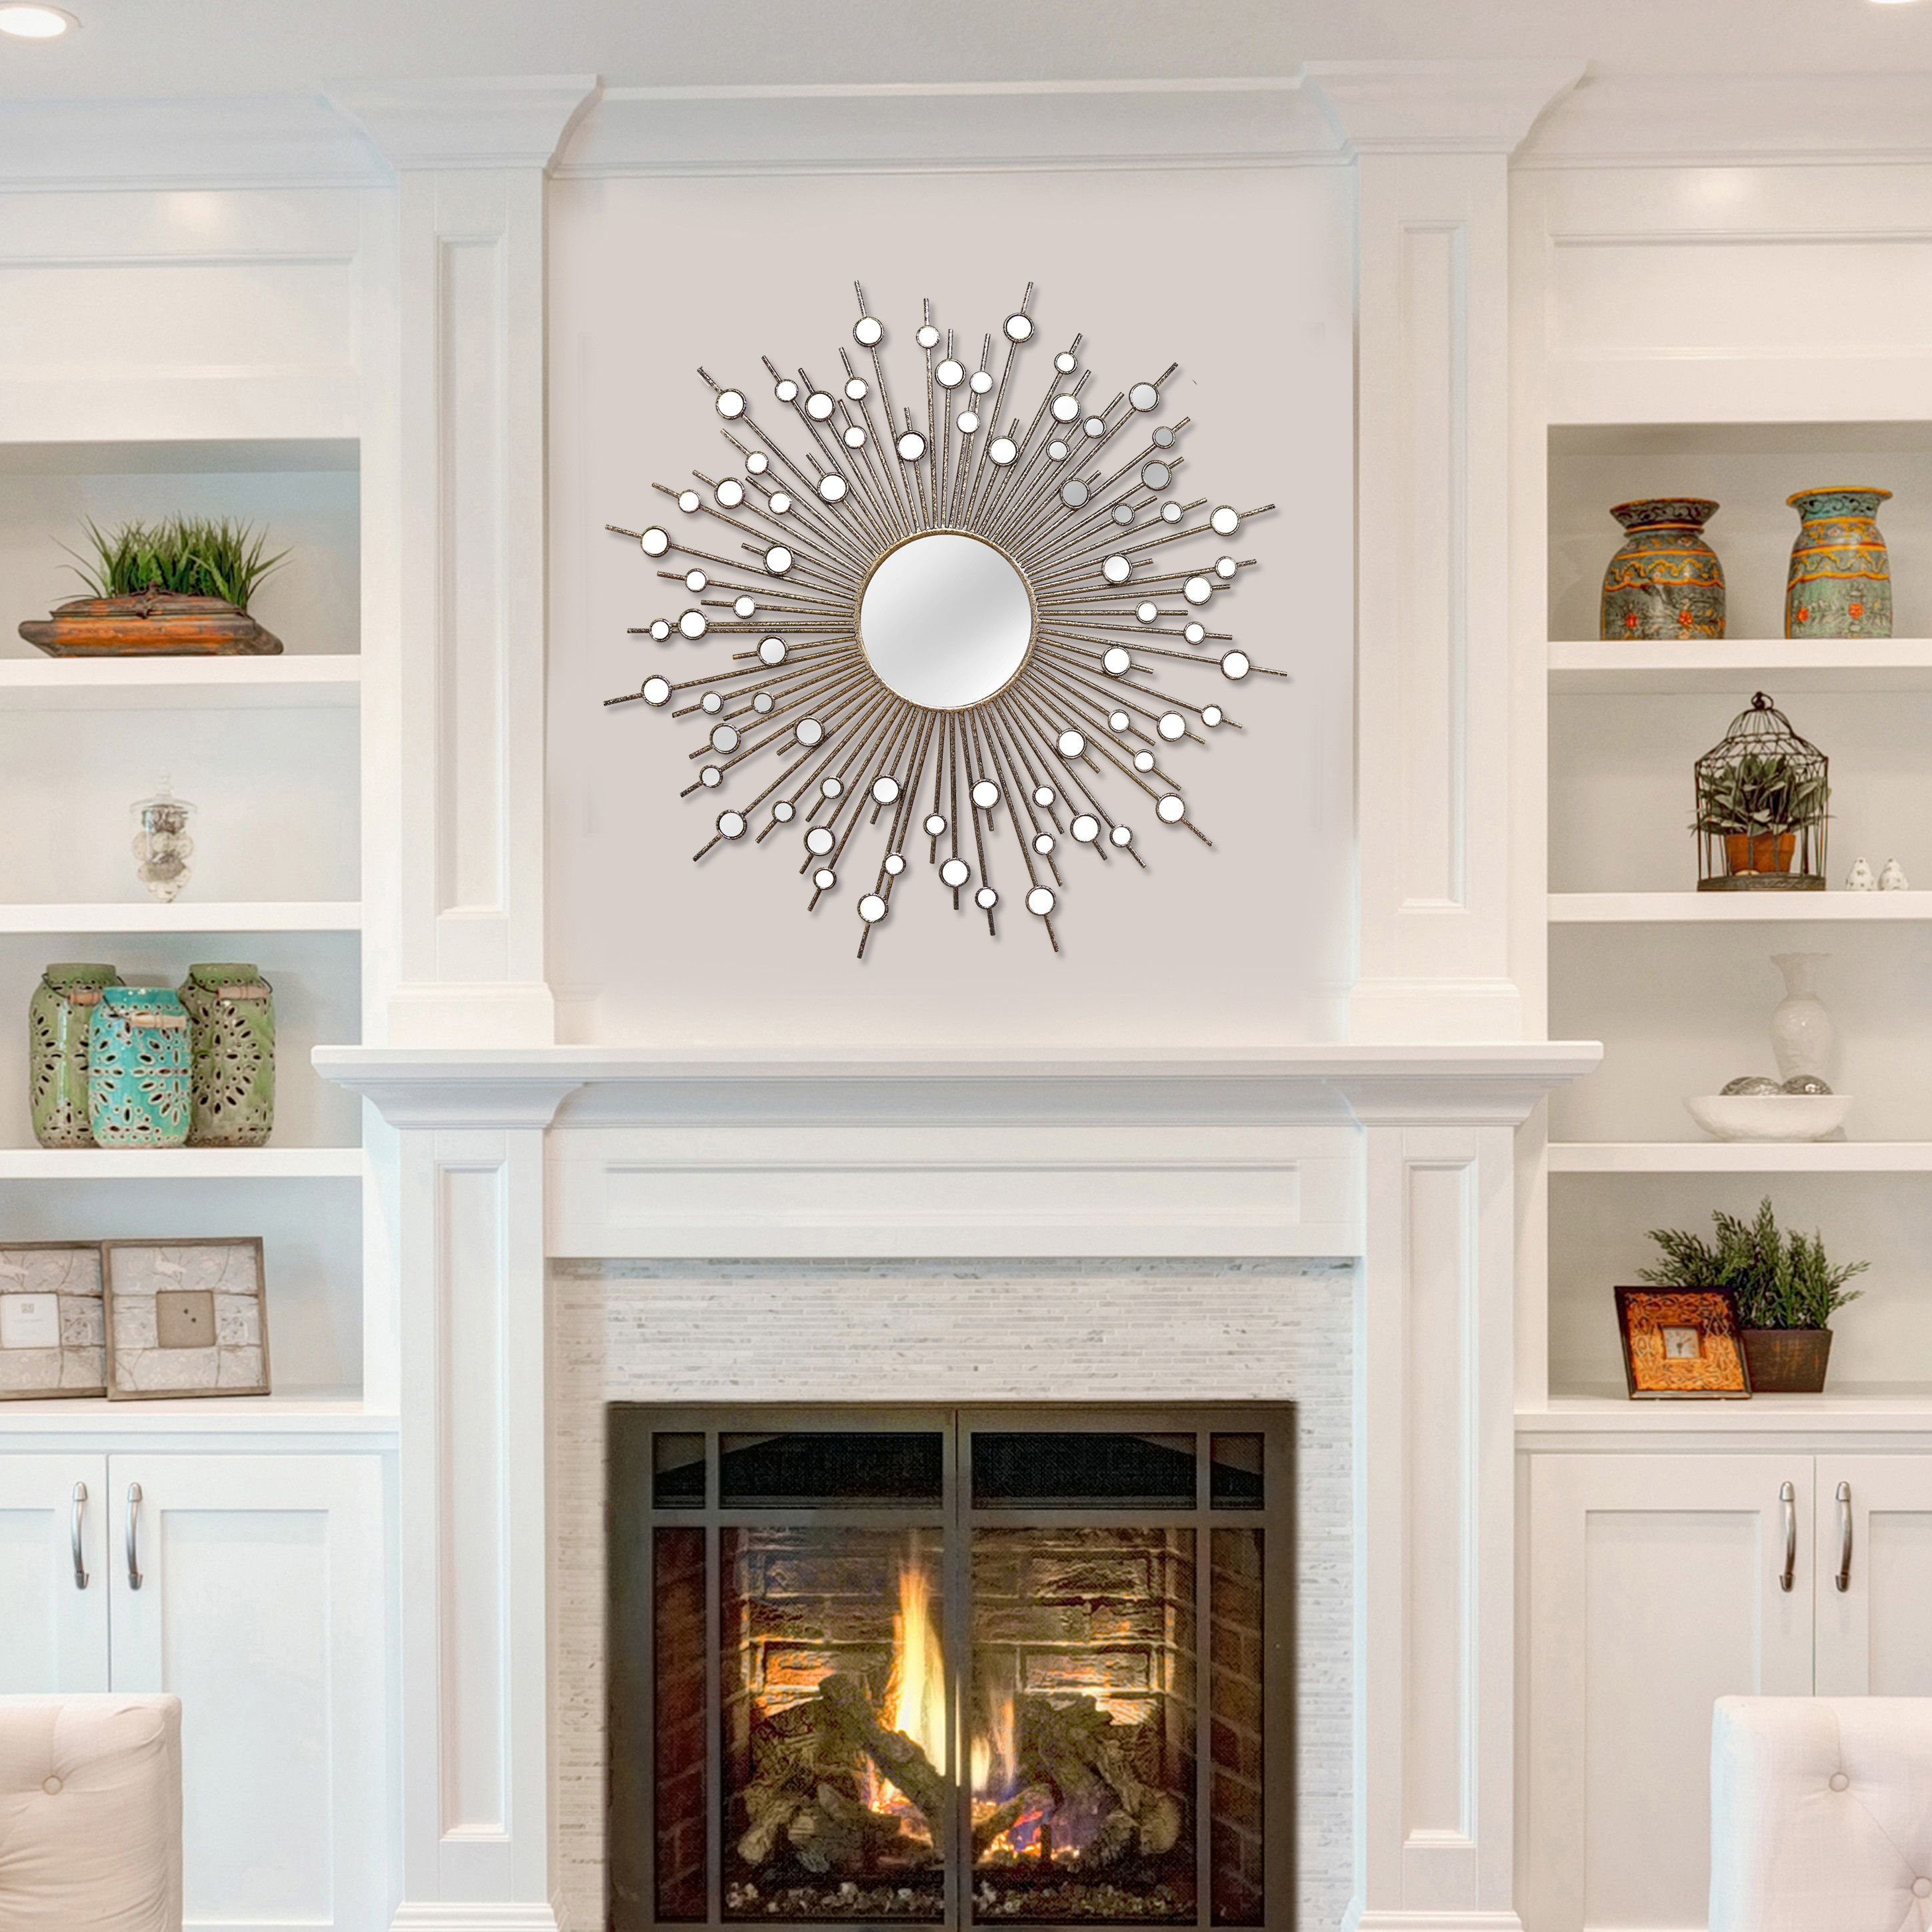 Penelope Over Mantel Mirror Miral S Dining Room Pinterest Wall